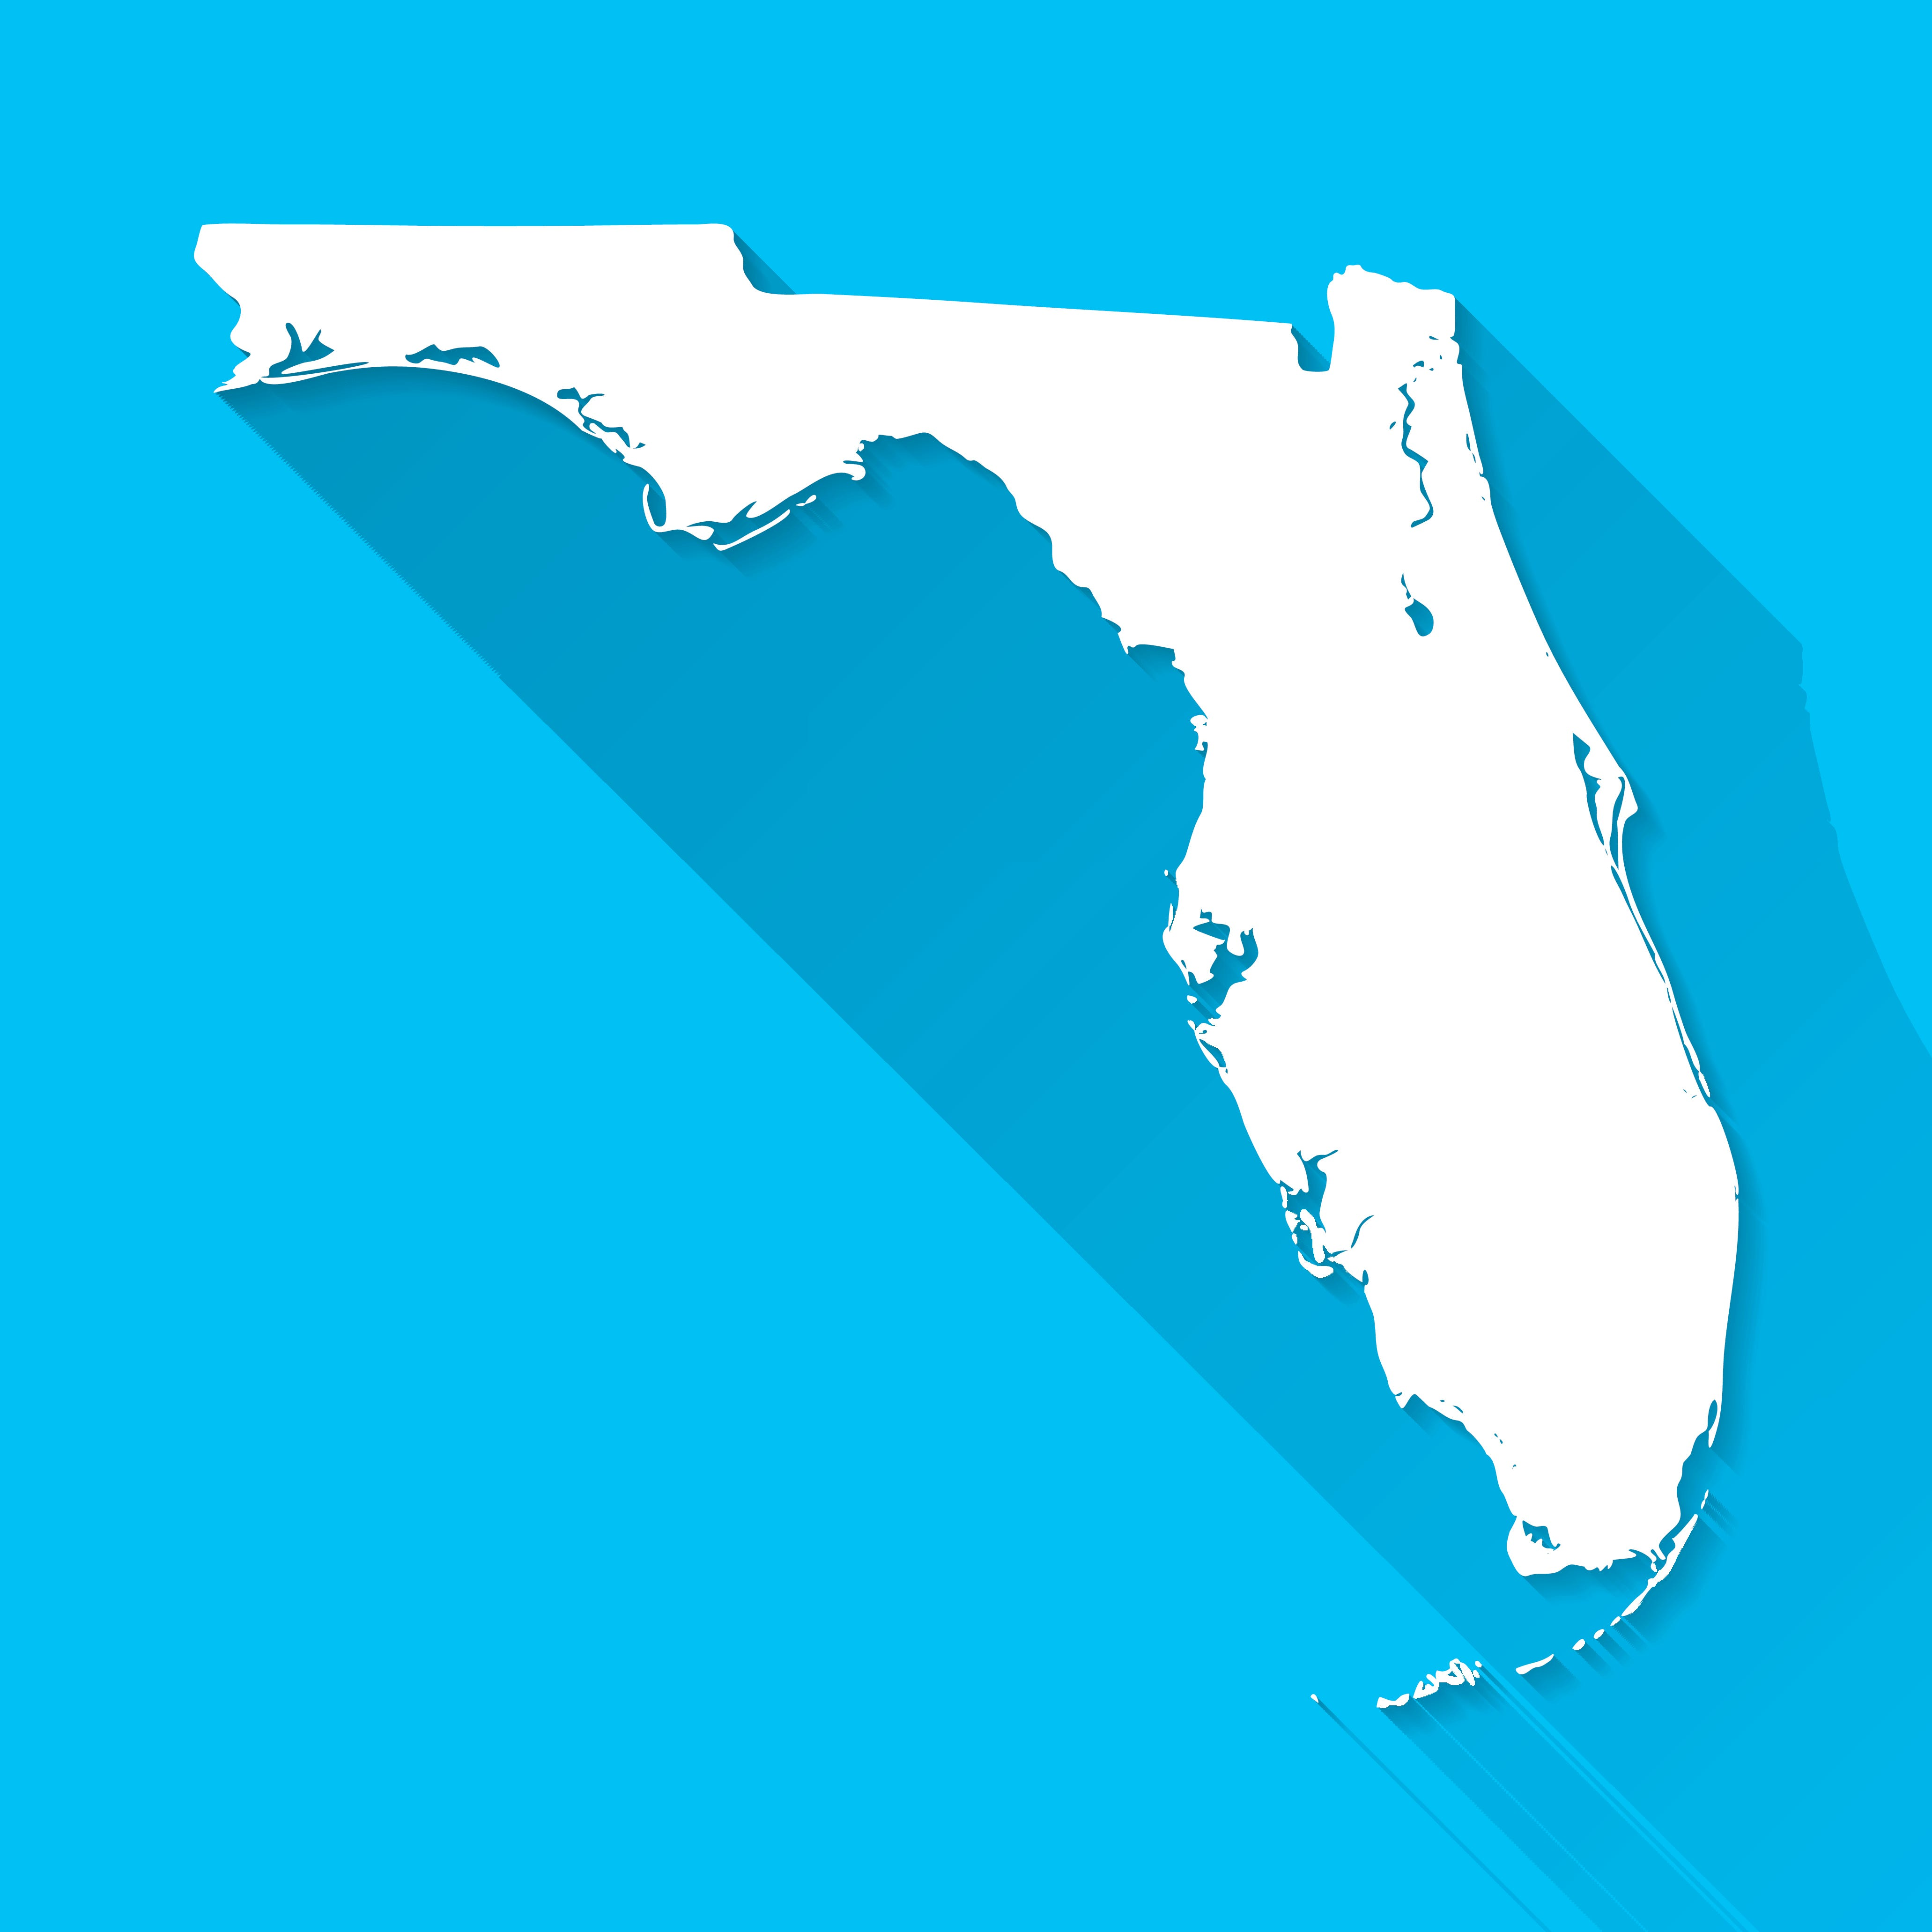 636390139258766662-Florida-2- Sorry, Floridians: Florida ranks pretty low in household earnings